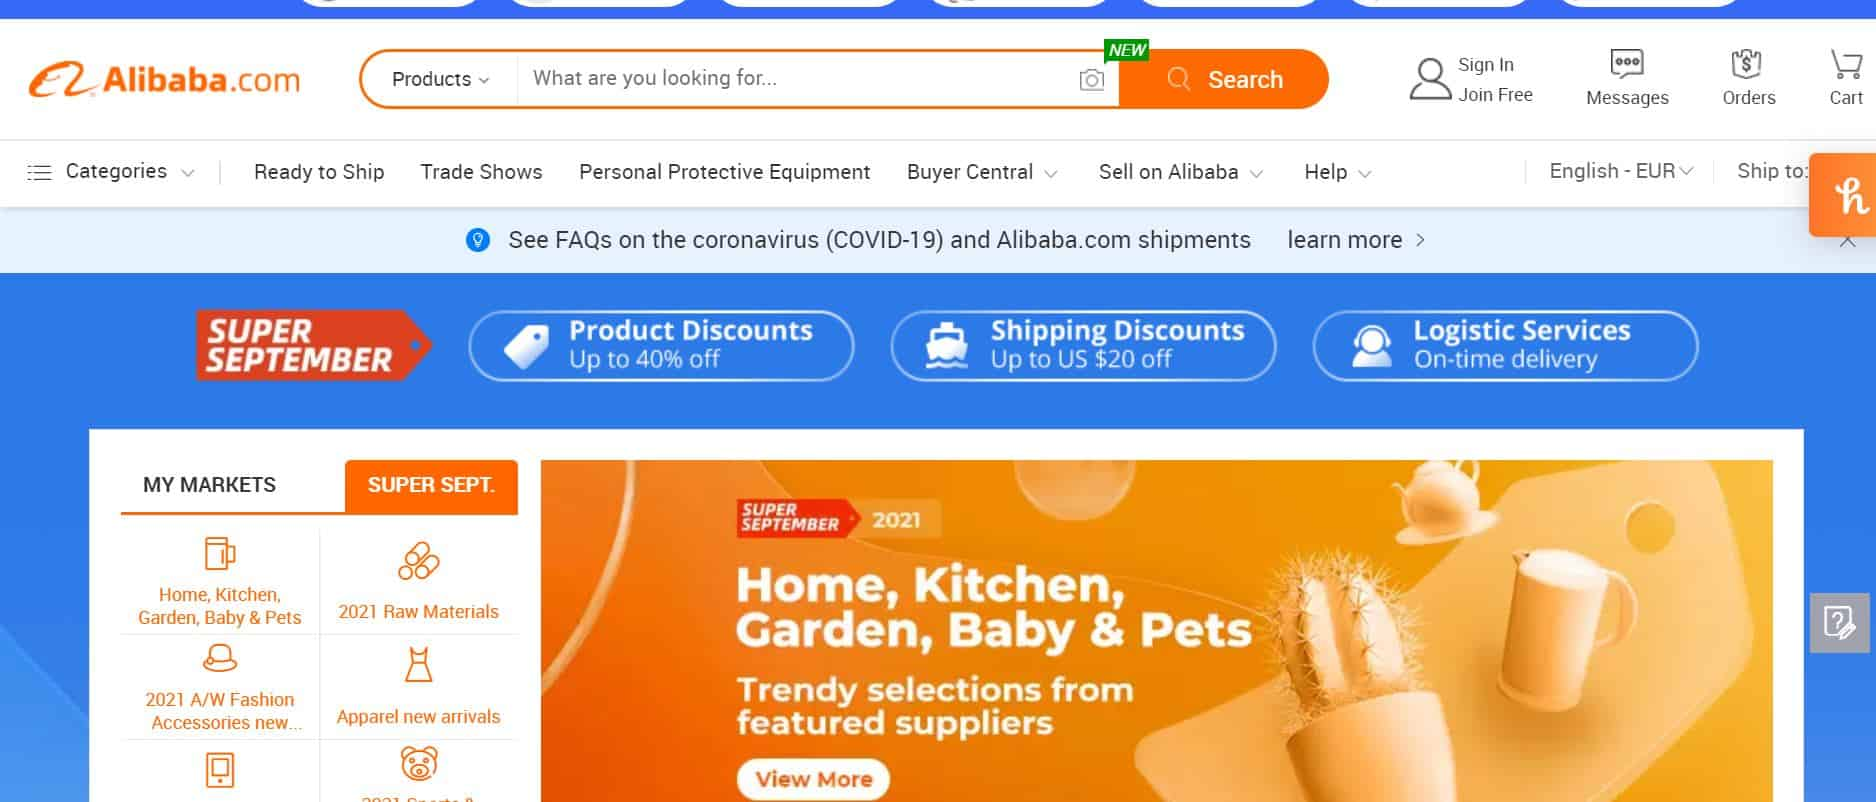 Alibaba free shipping and other promotions to get more customers.